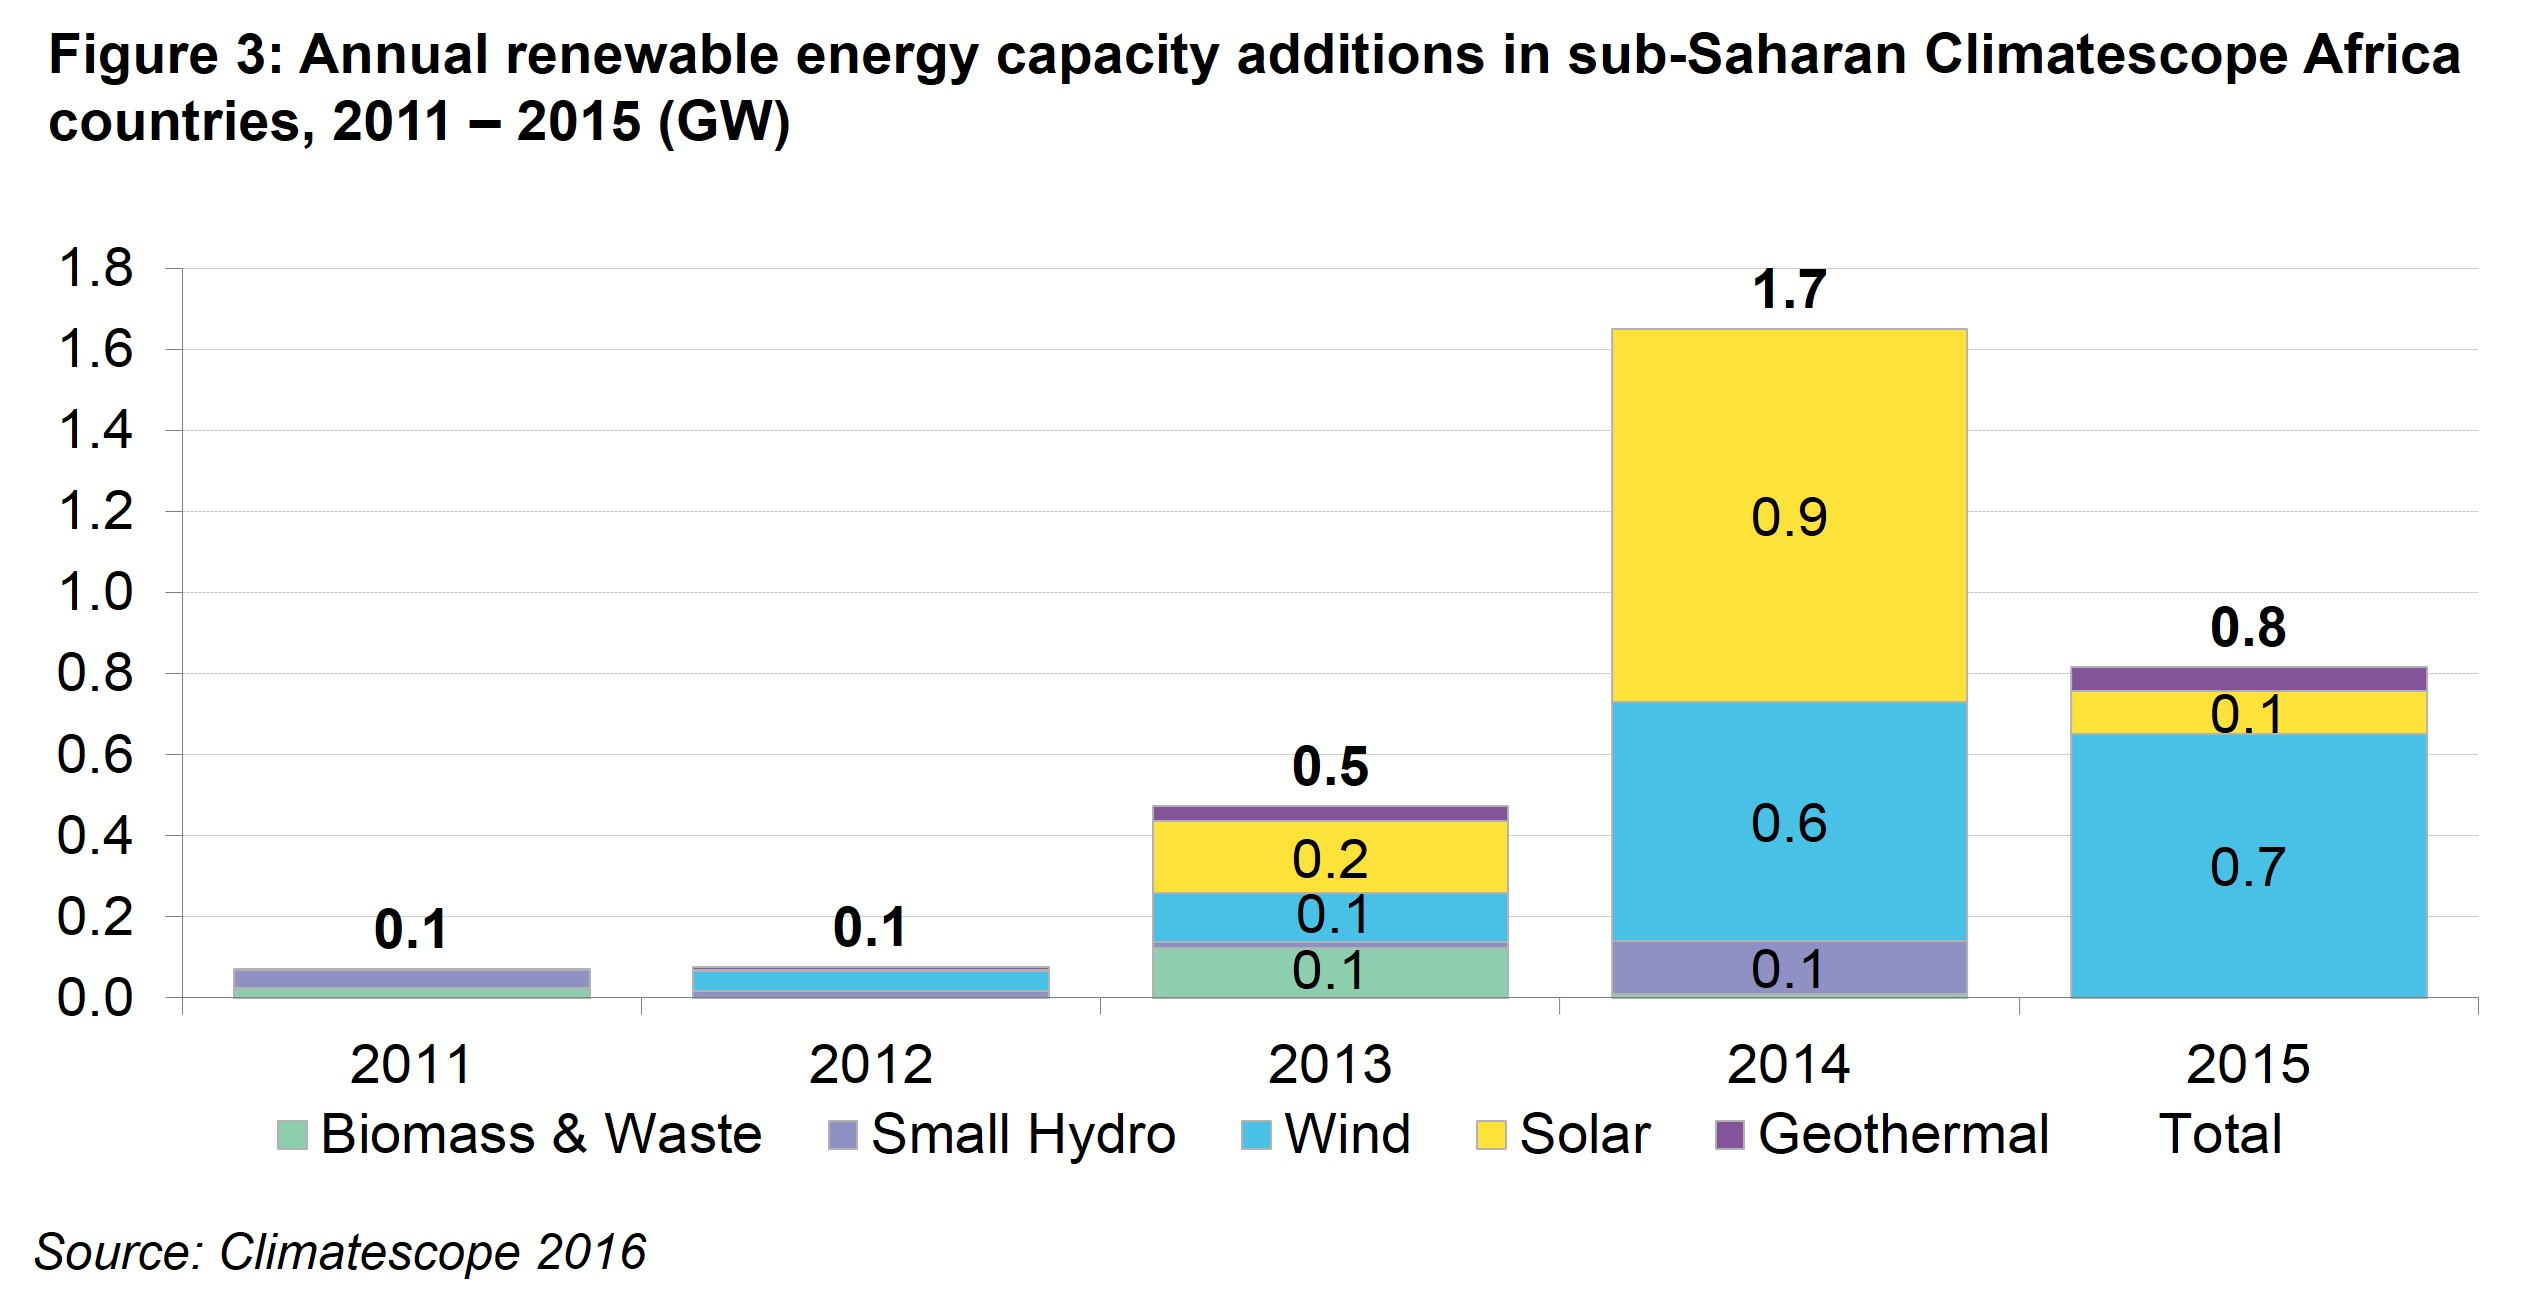 AM Fig 3 - Annual renewable energy capacity additions in sub-Saharan Climatescope Africa nations, 2011 – 2015 (GW)